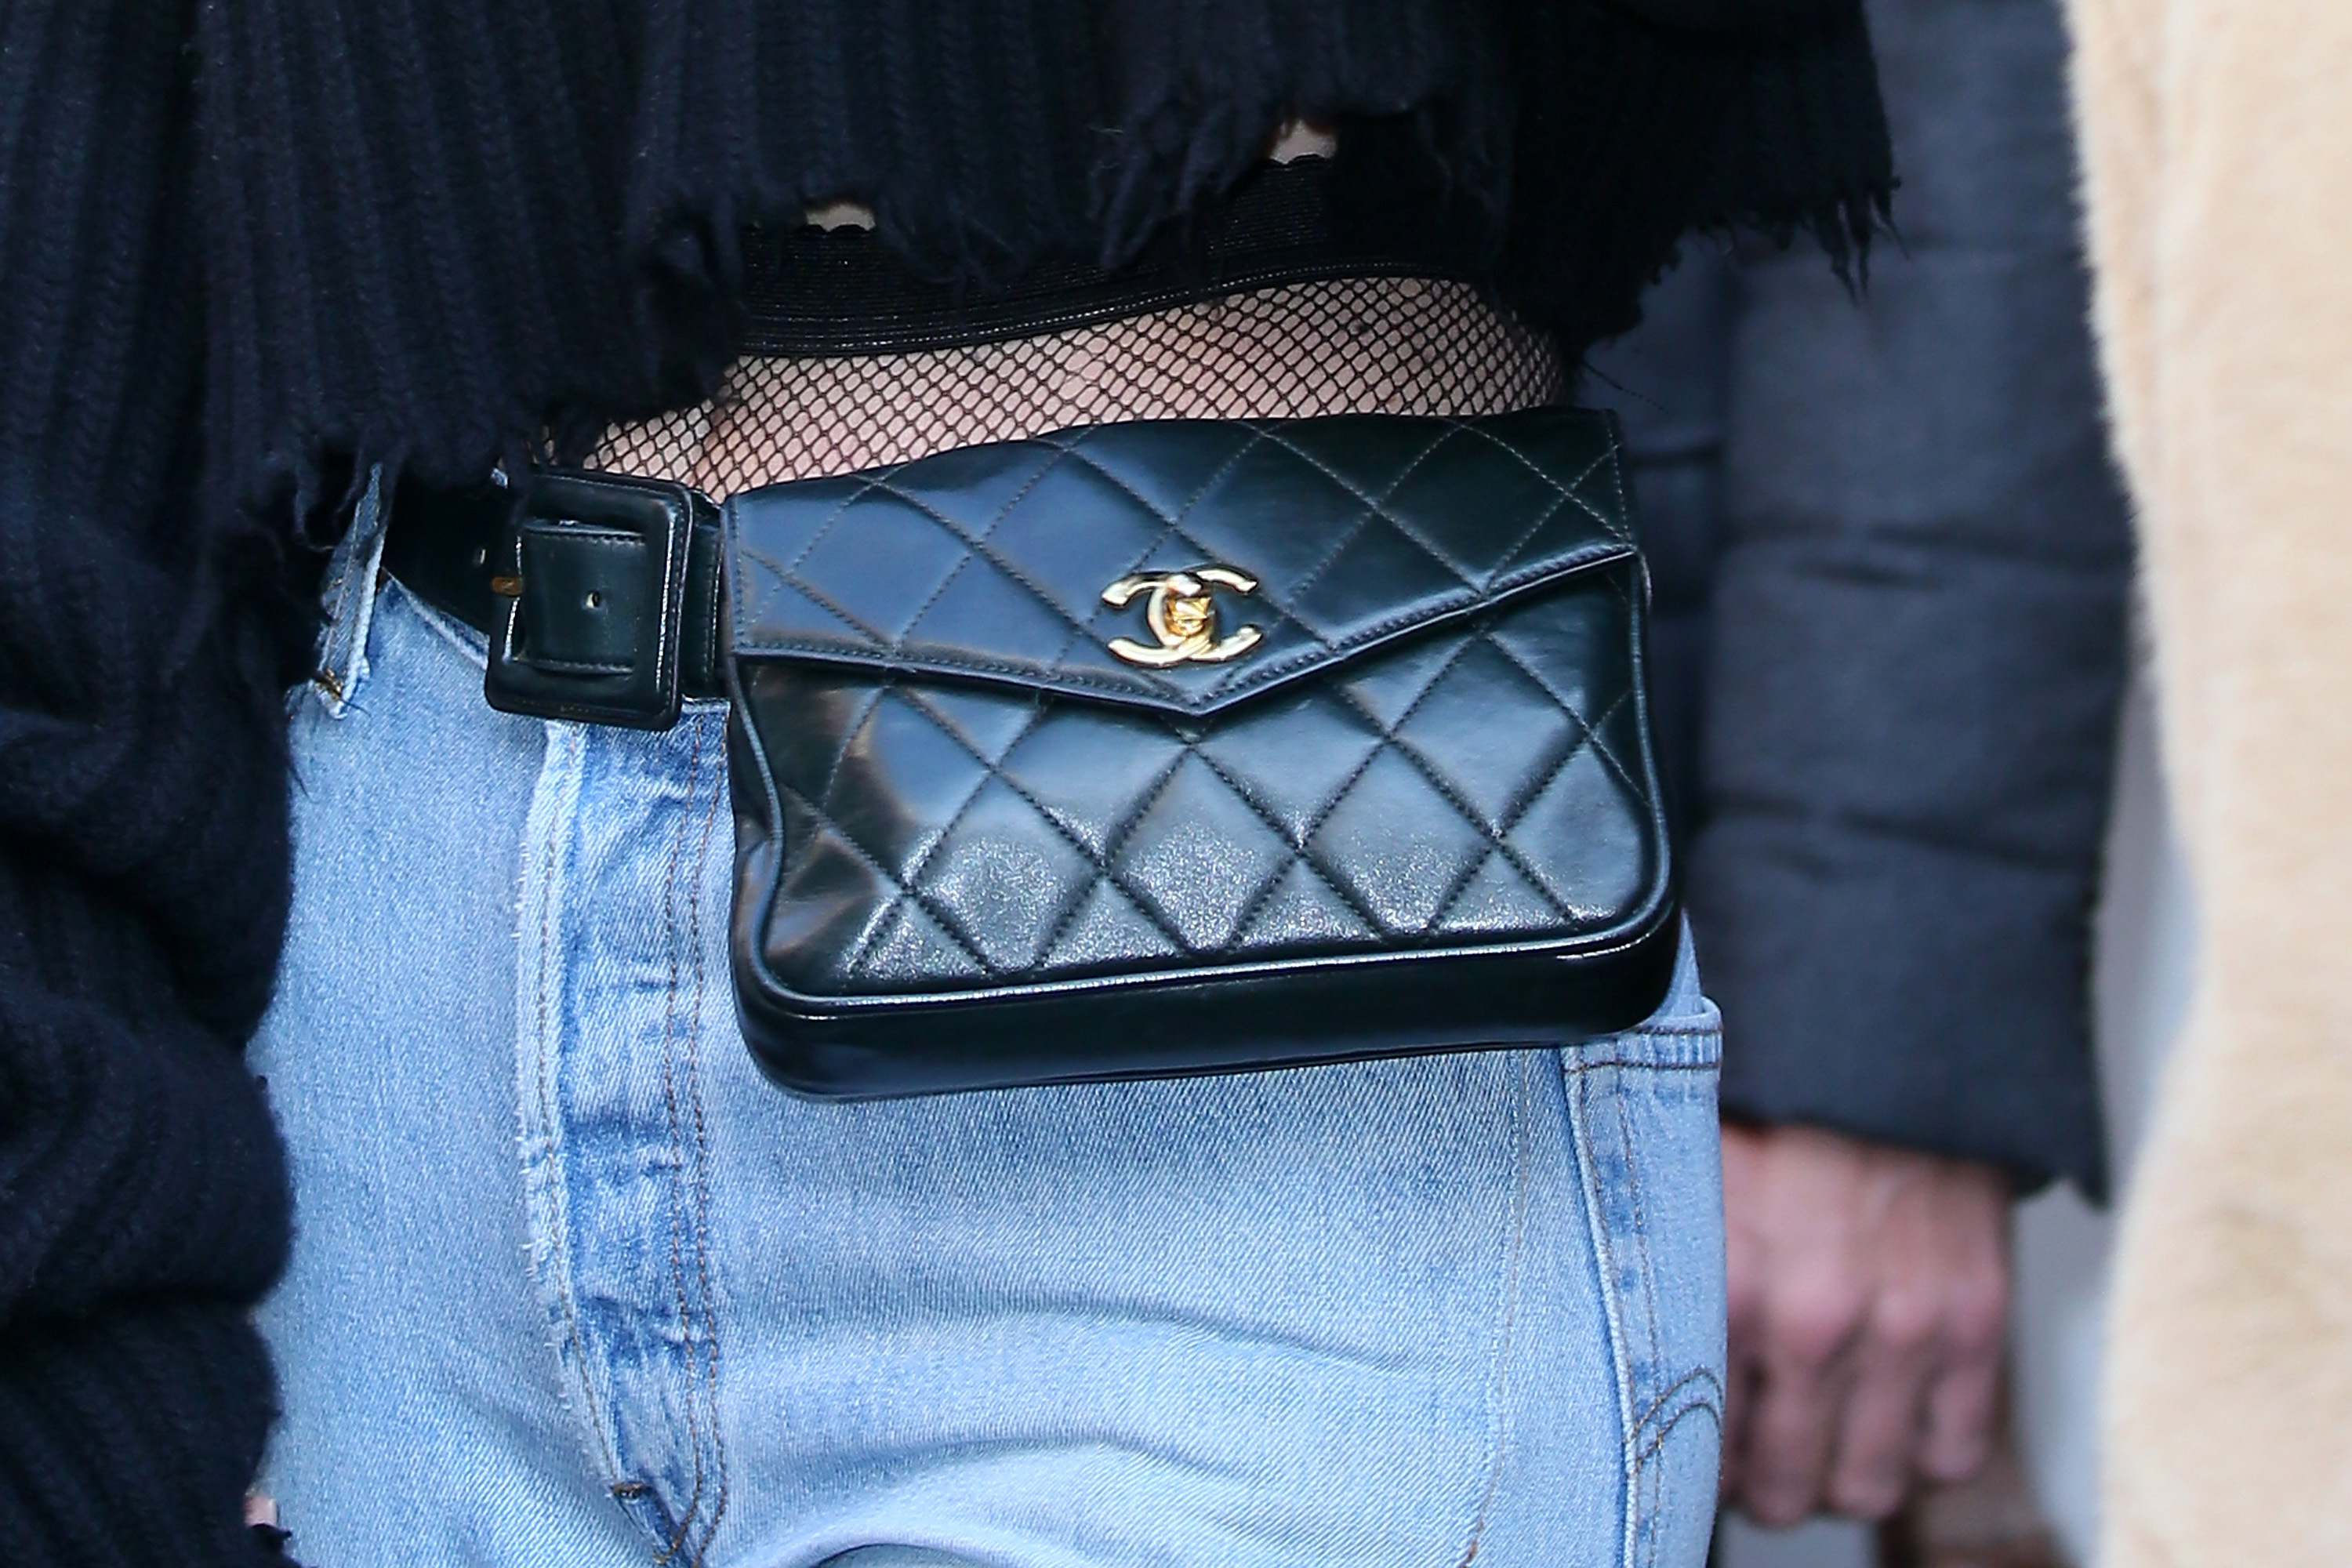 Kendall Jenner fanny pack